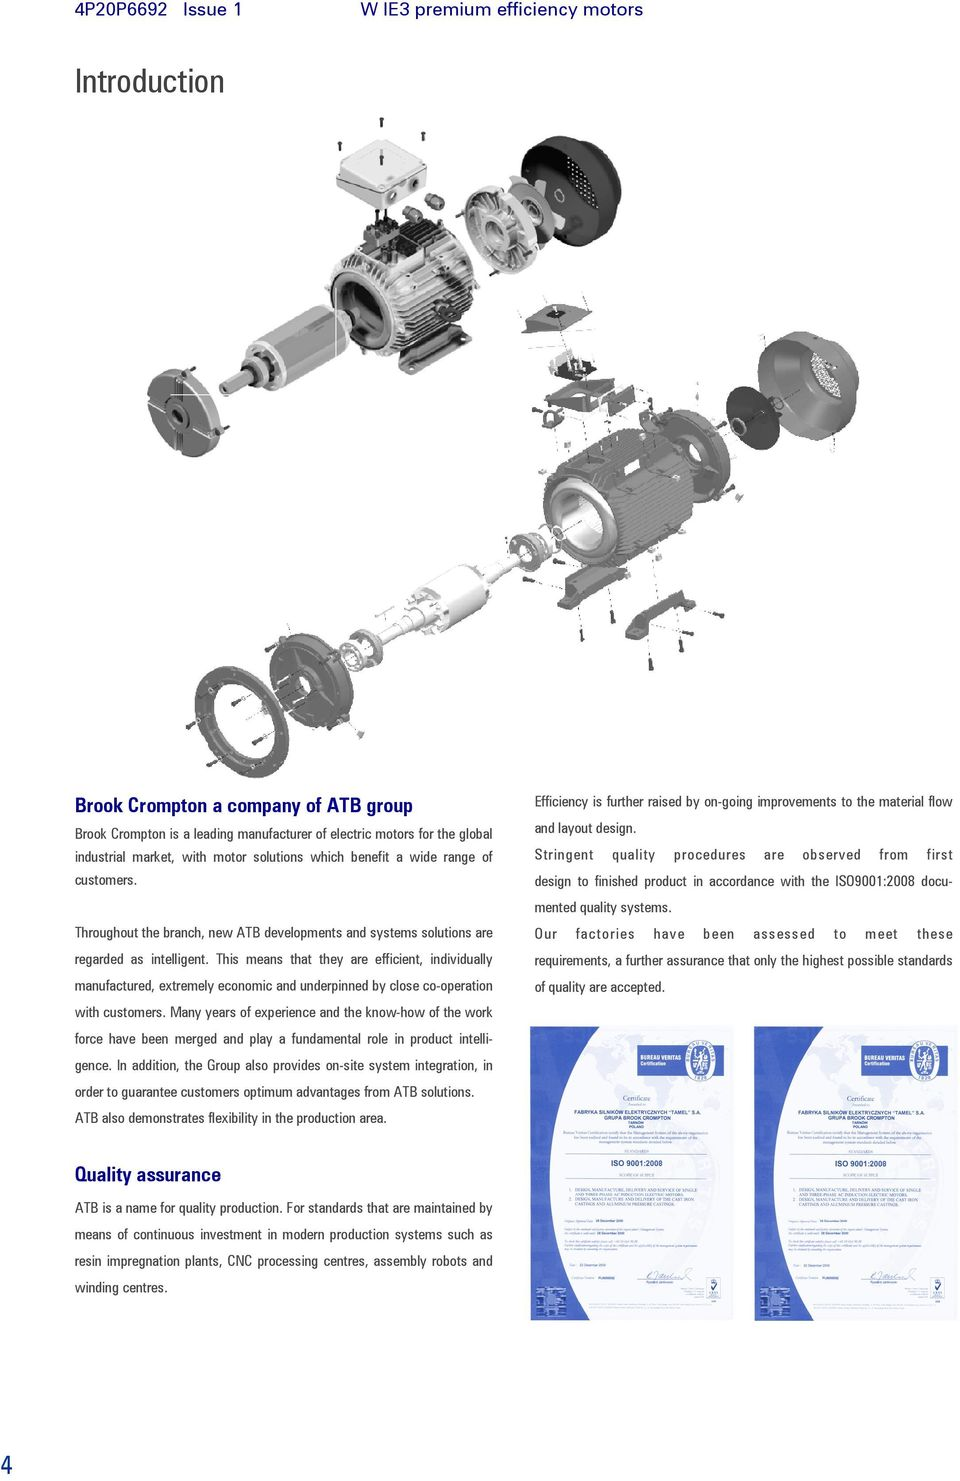 W Ie3 Premium Efficiency Motors Aluminium And Cast Iron Frame Pdf Brook Crompton Motor Wiring Diagrams This Means That They Are Efficient Individually Manufactured Extremely Economic Underpinned By Close